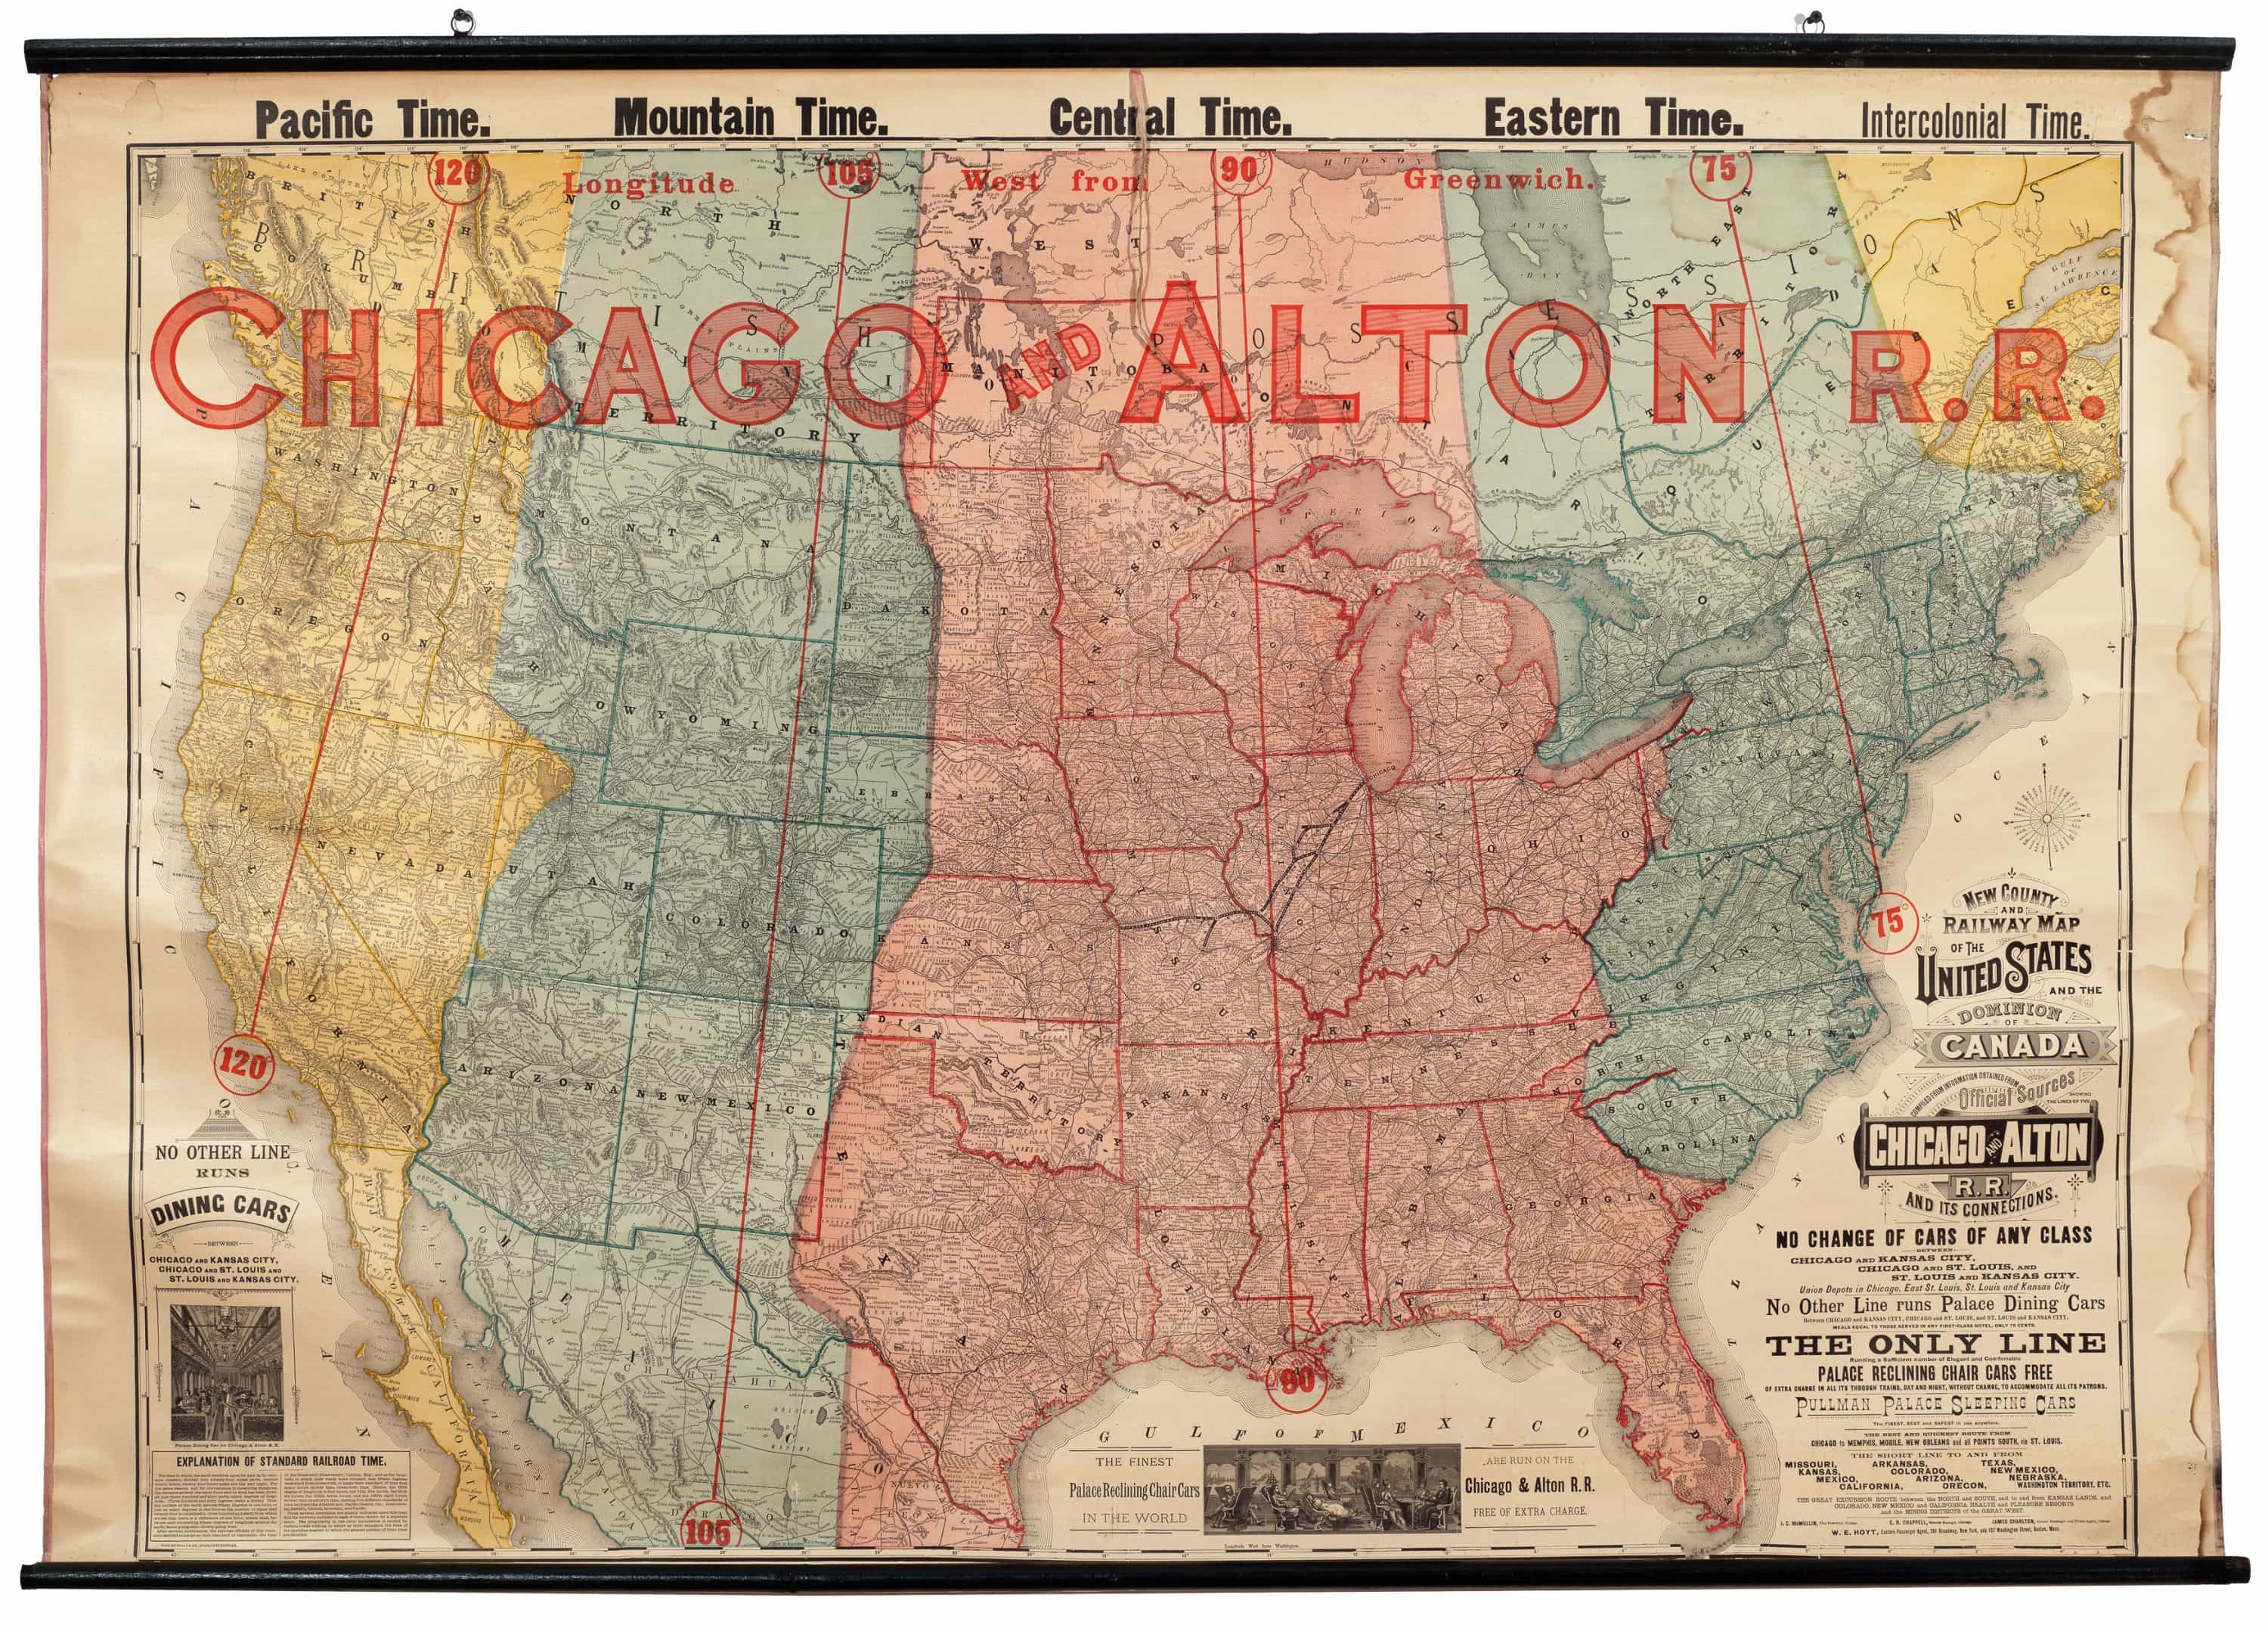 Striking Railroad Map Featuring New American Time Zones Rare - Chicago map time zone